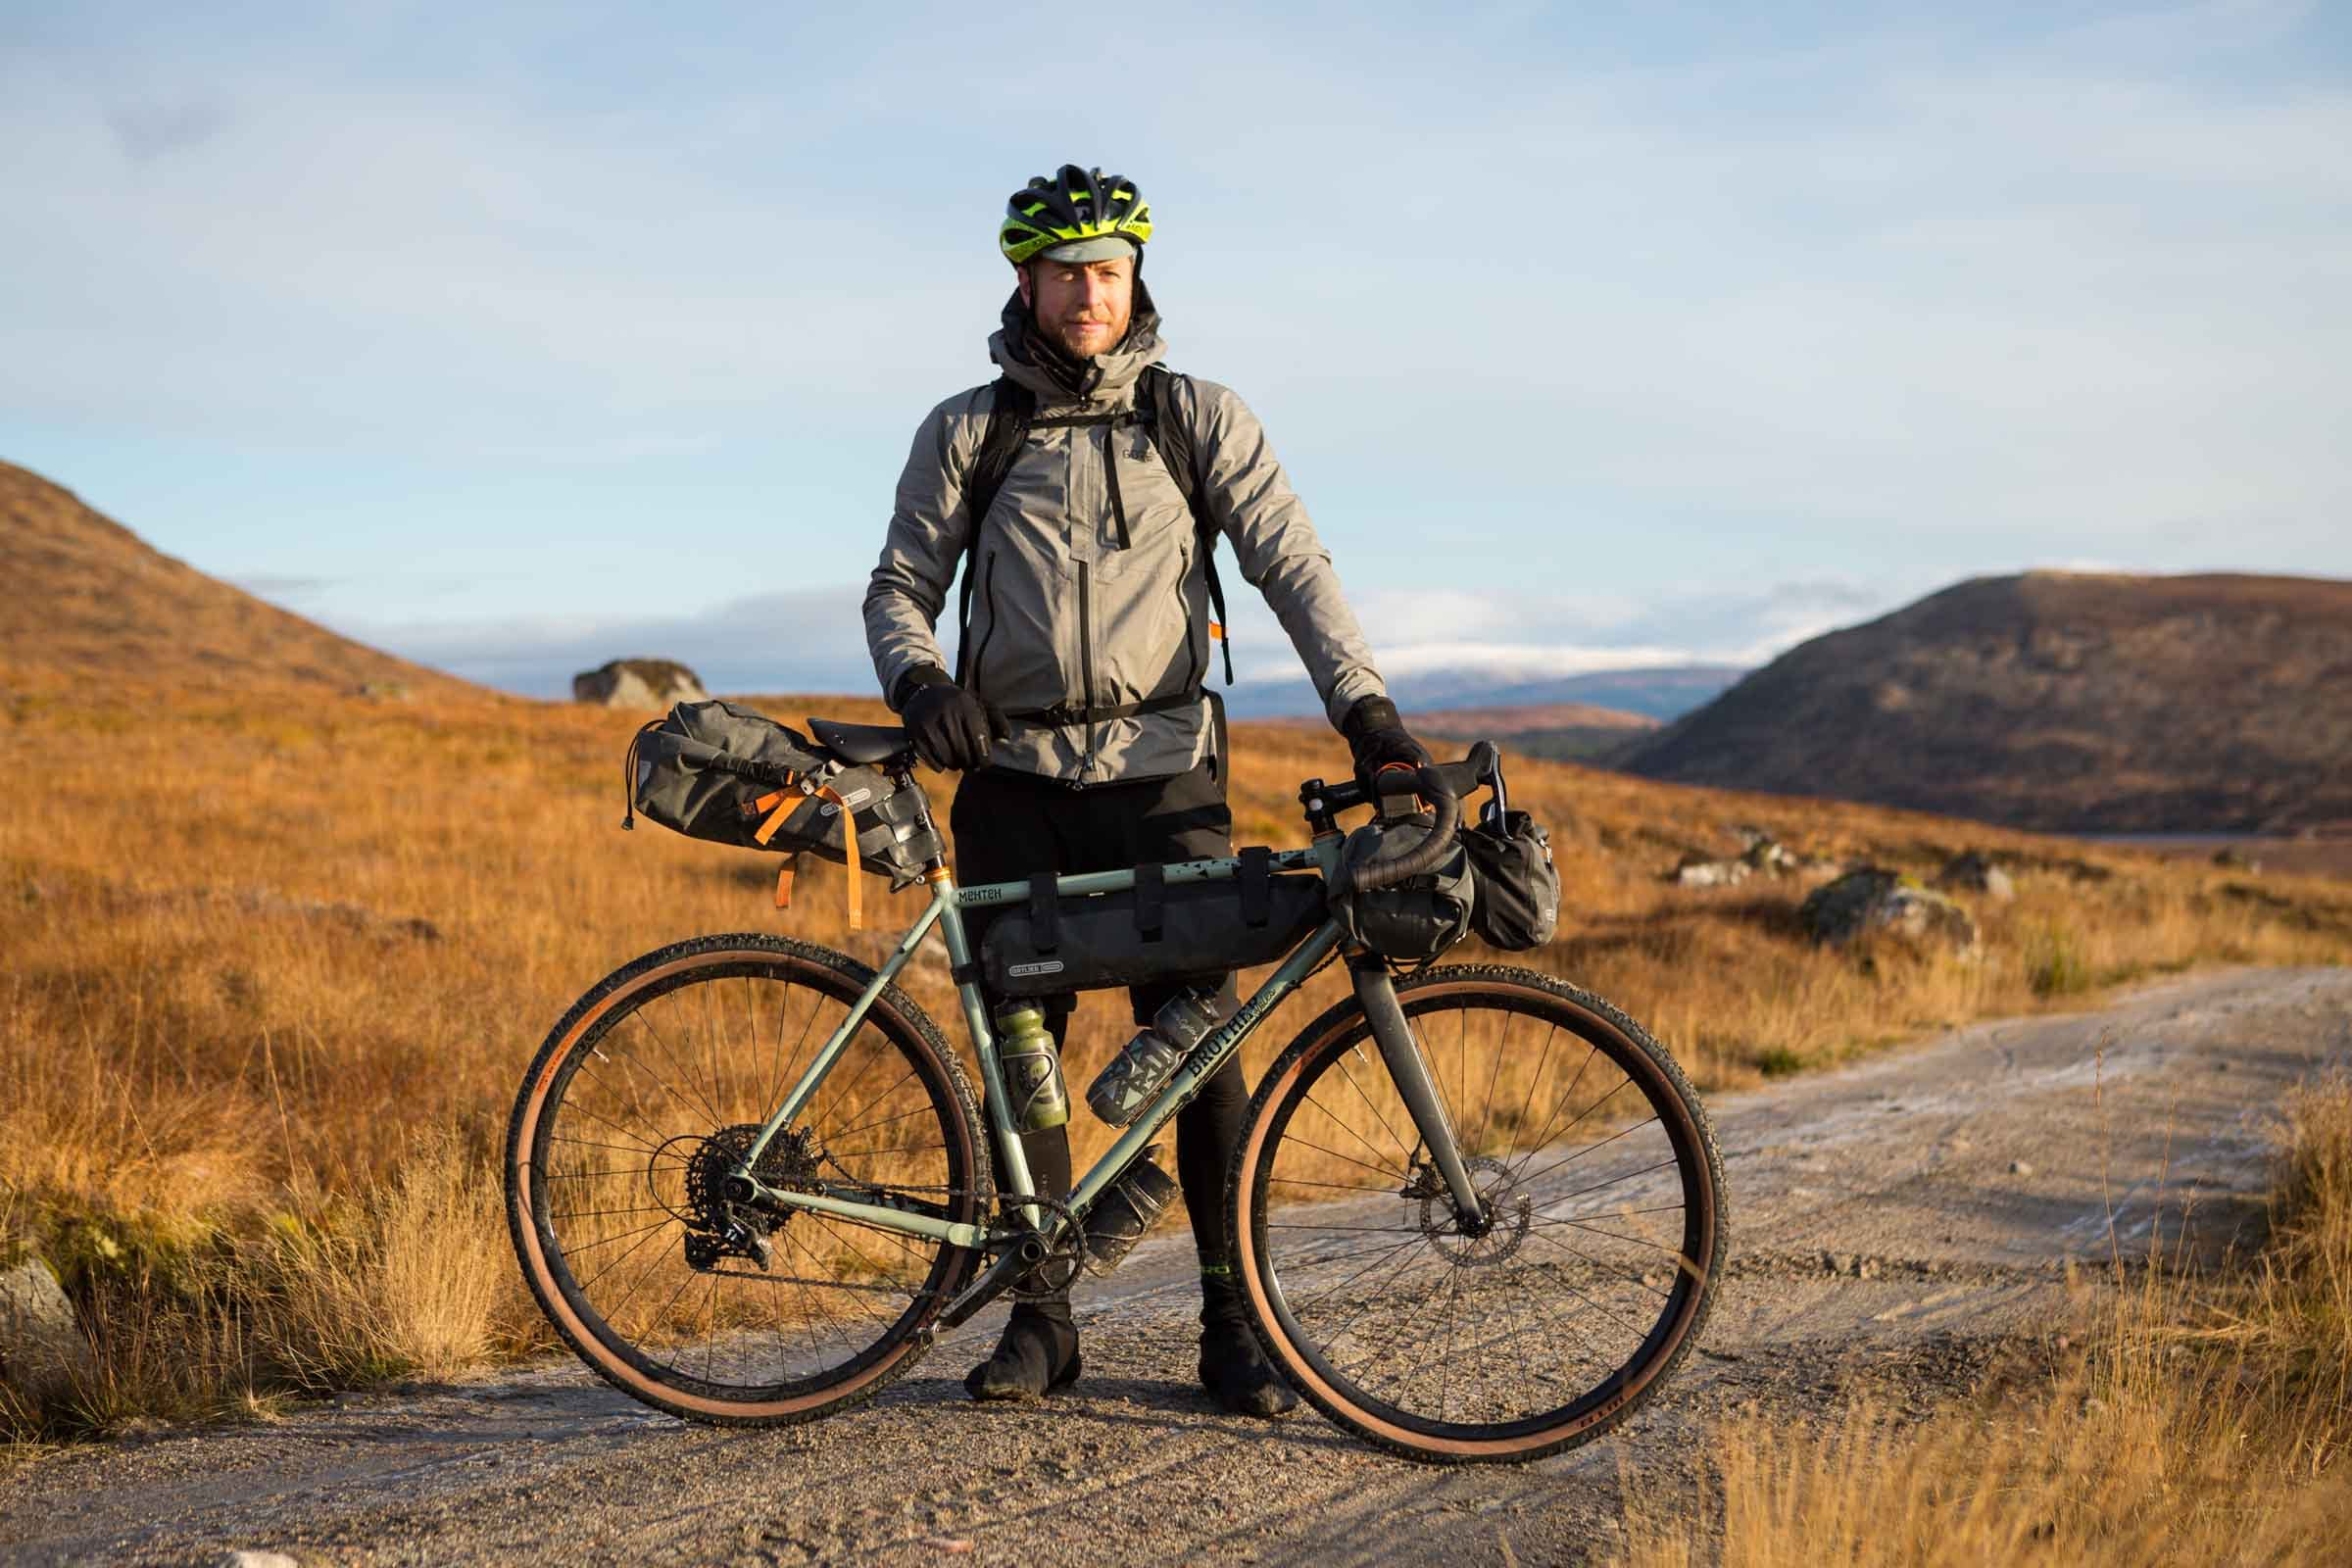 Pannier_Rainspotting_Bikepacking-Scotland-Highlands_057